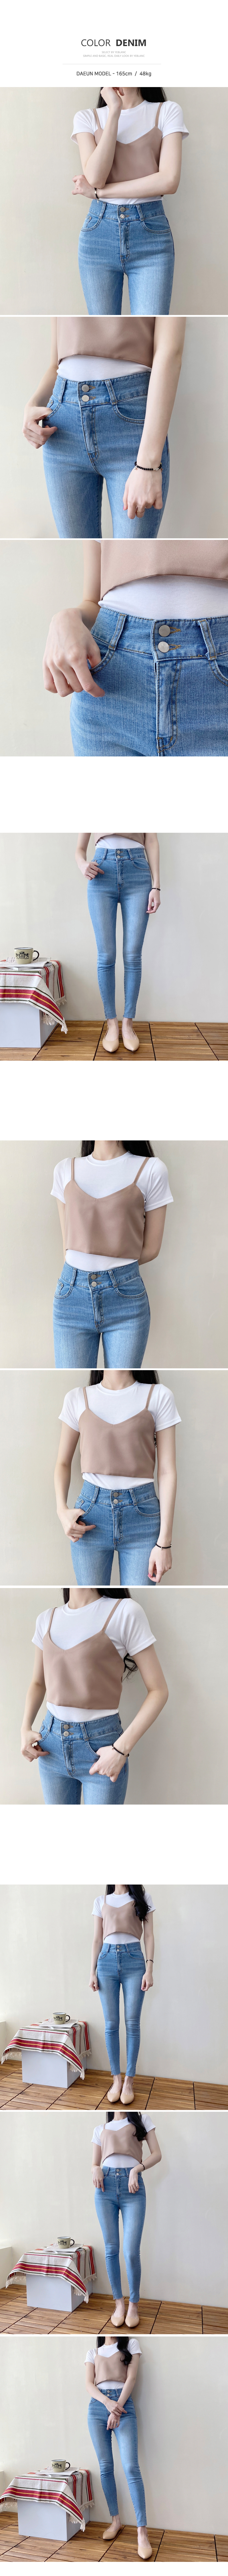 Two-button basic skinny jeans P#YW470